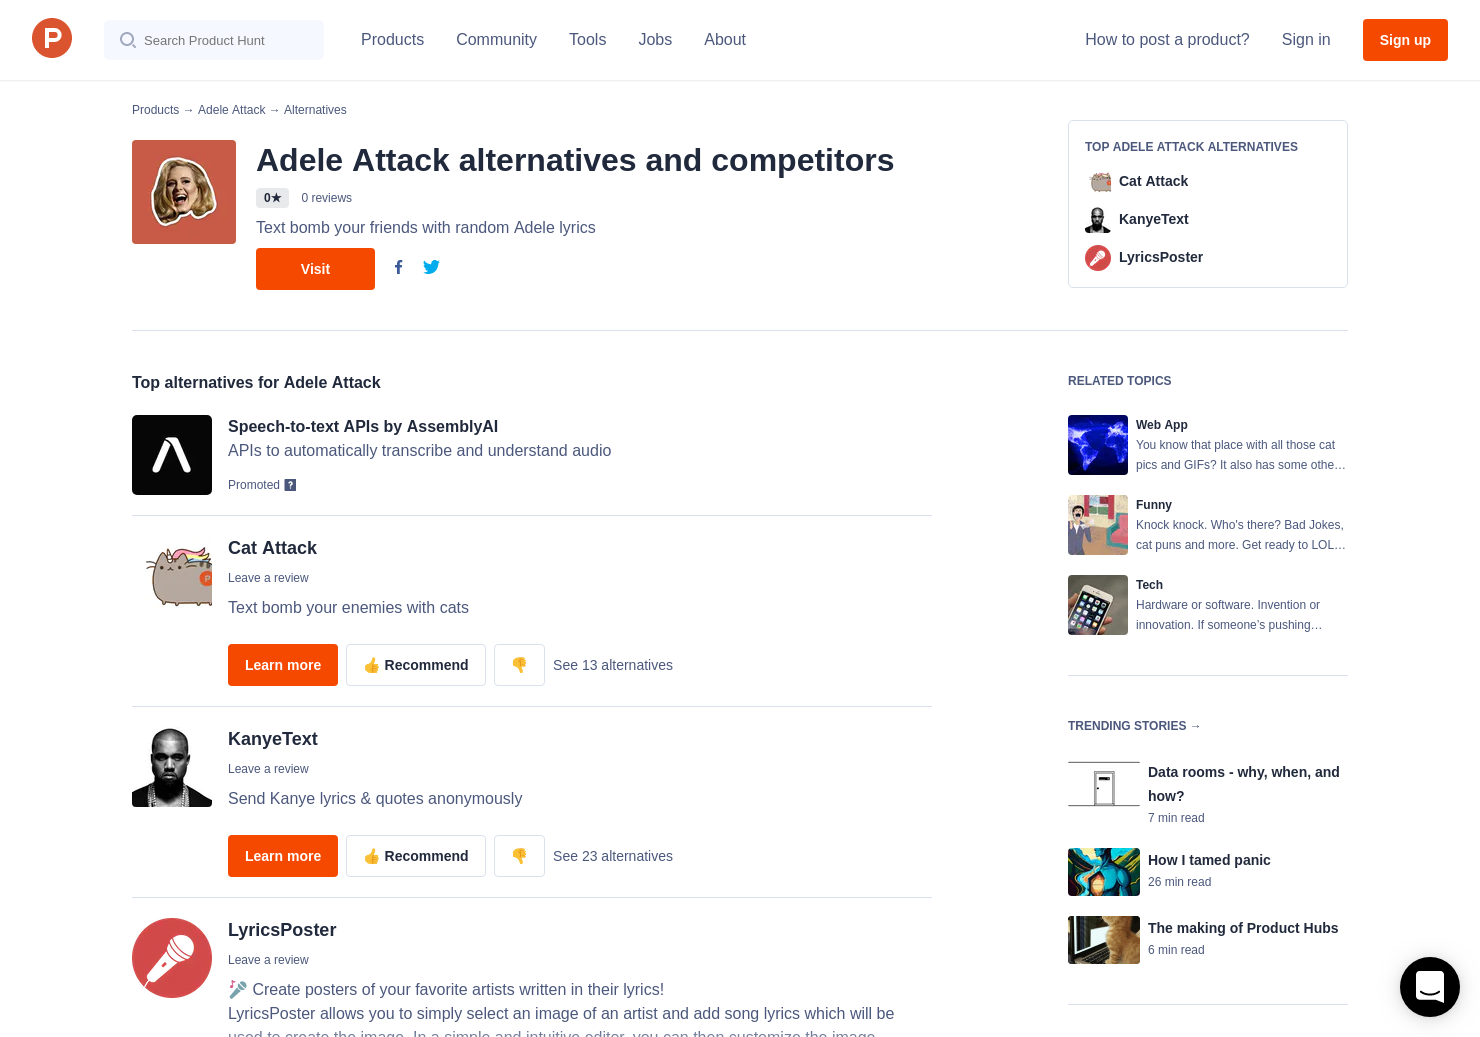 16 Alternatives to Adele Attack | Product Hunt